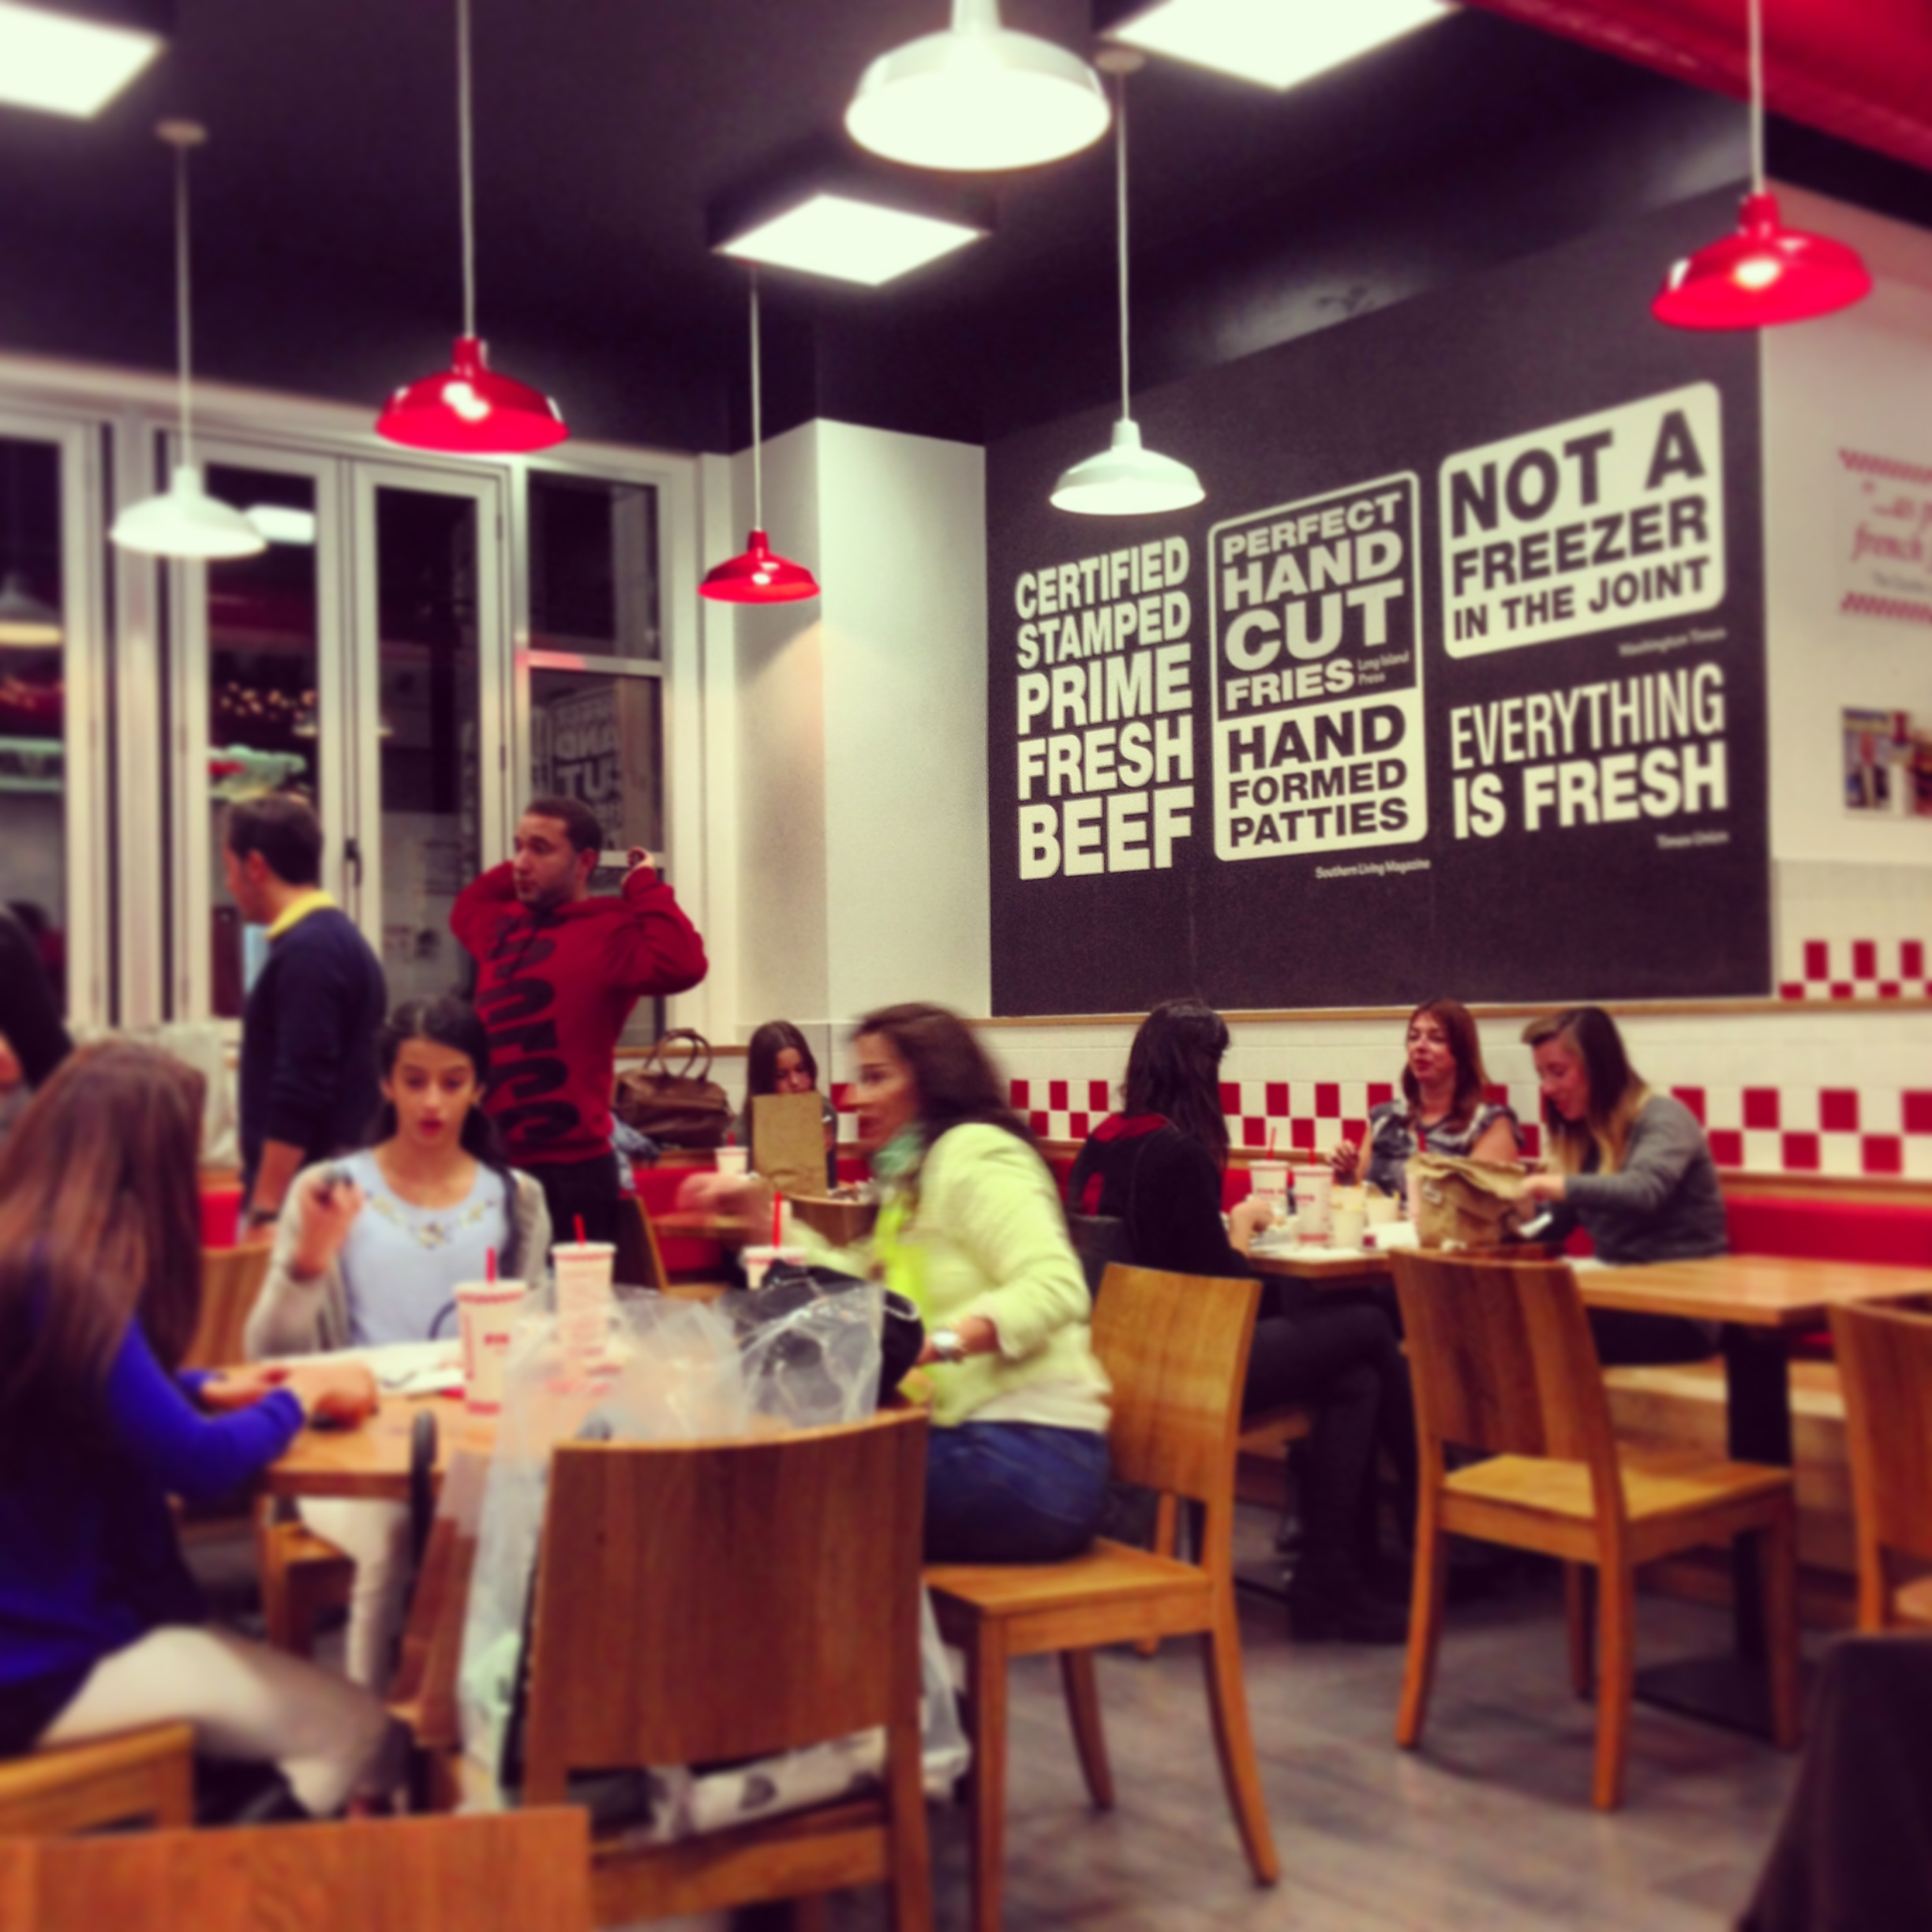 I Had High Hopes For Five Guys, The Second Of The American Burger Newcomers  To Covent Garden. I Tried The Other US Establishment, Shake Shack Months  Earlier ...